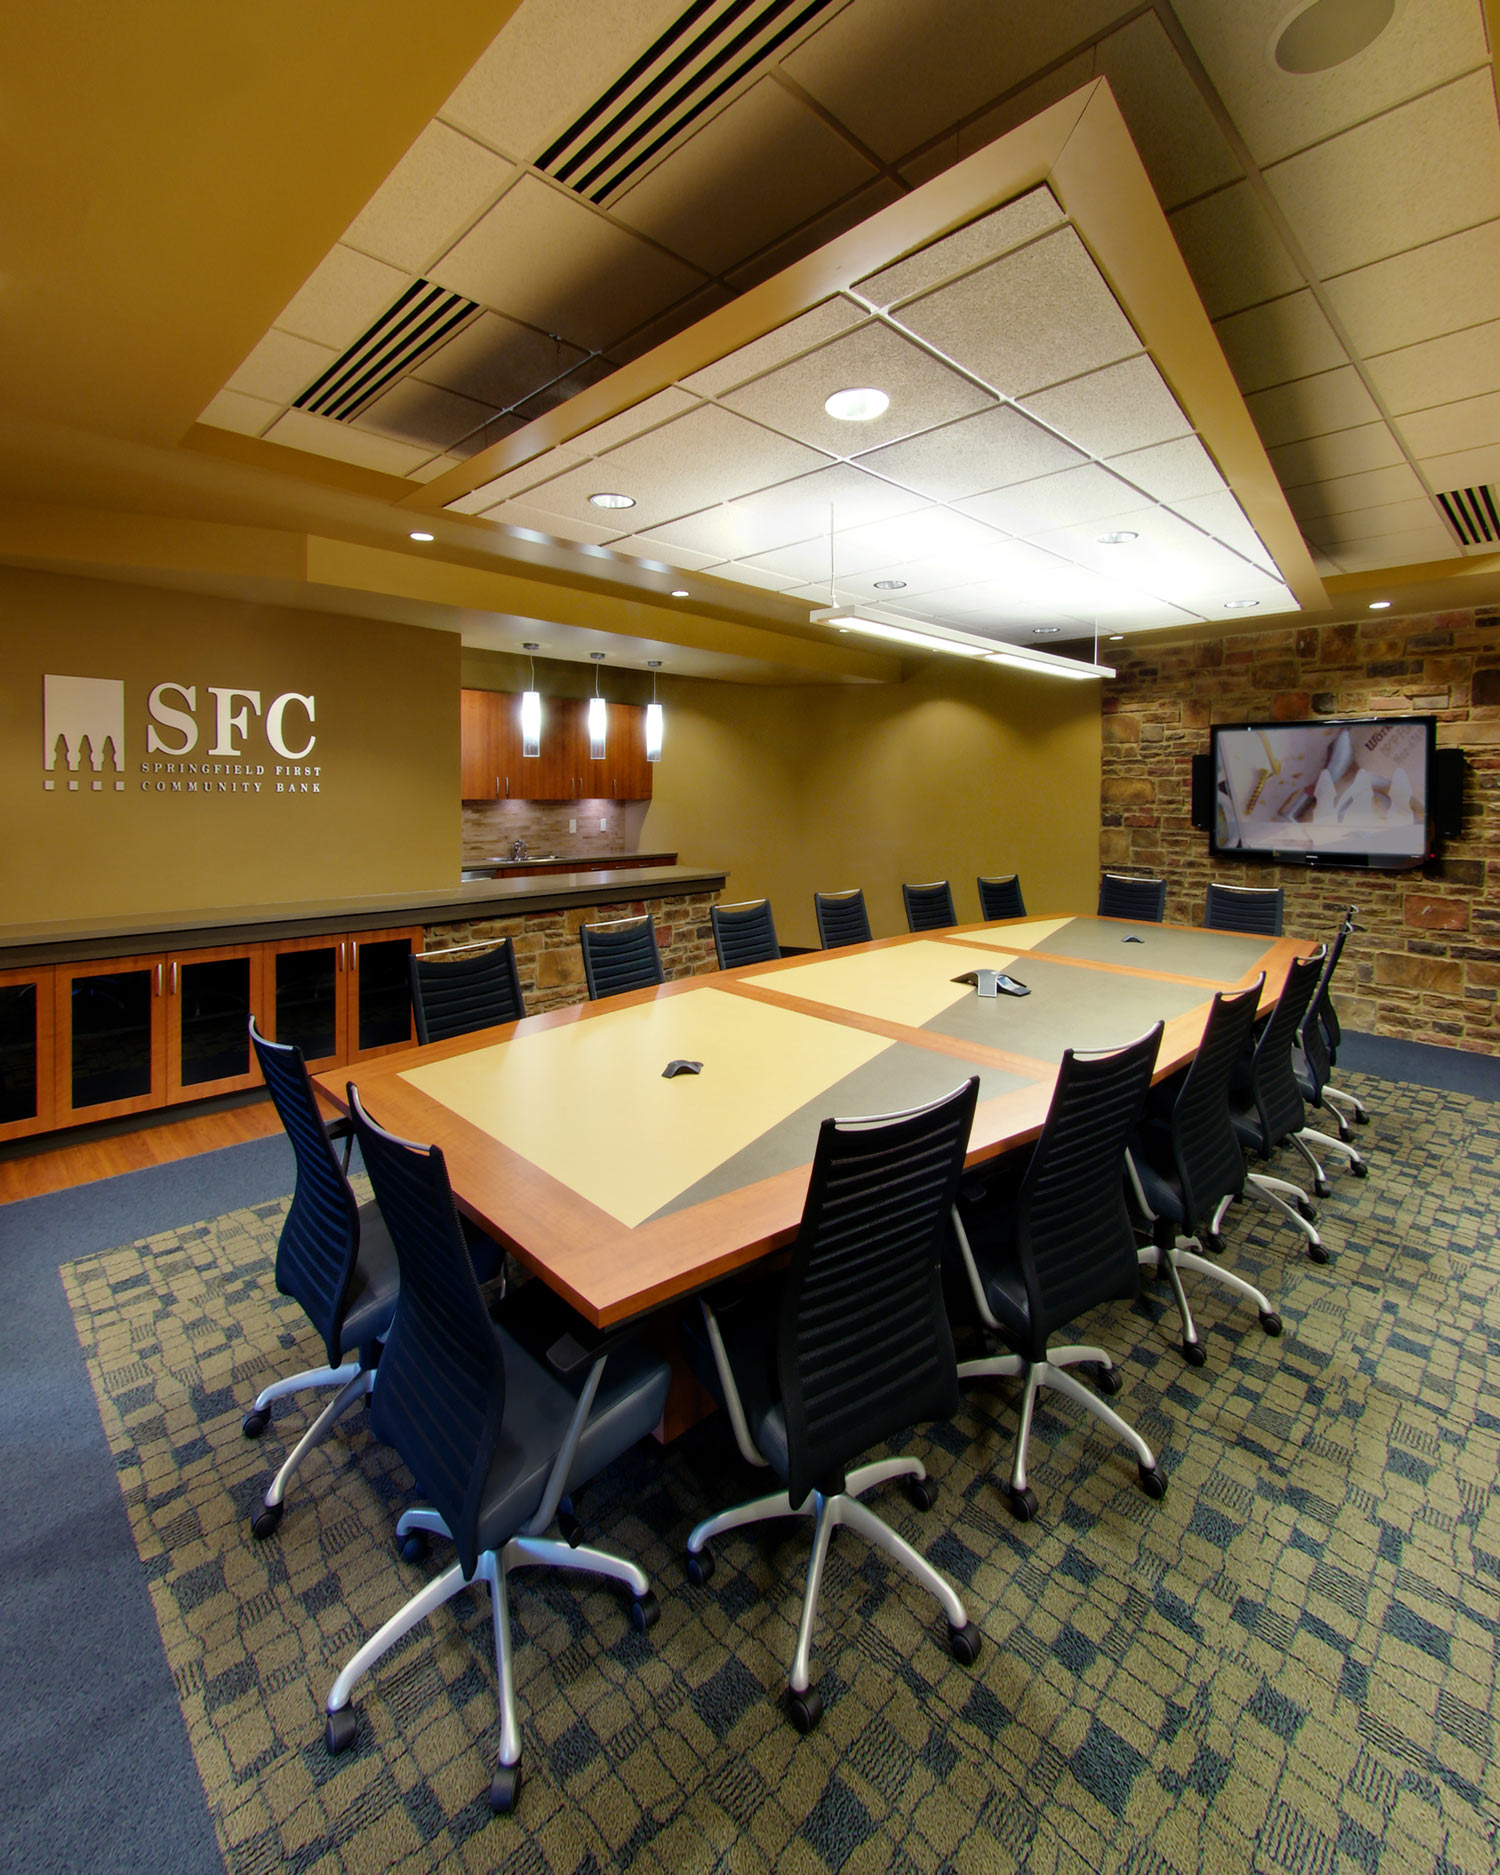 Springfield-First-Community-Bank-H-Design-Interior-02.jpg